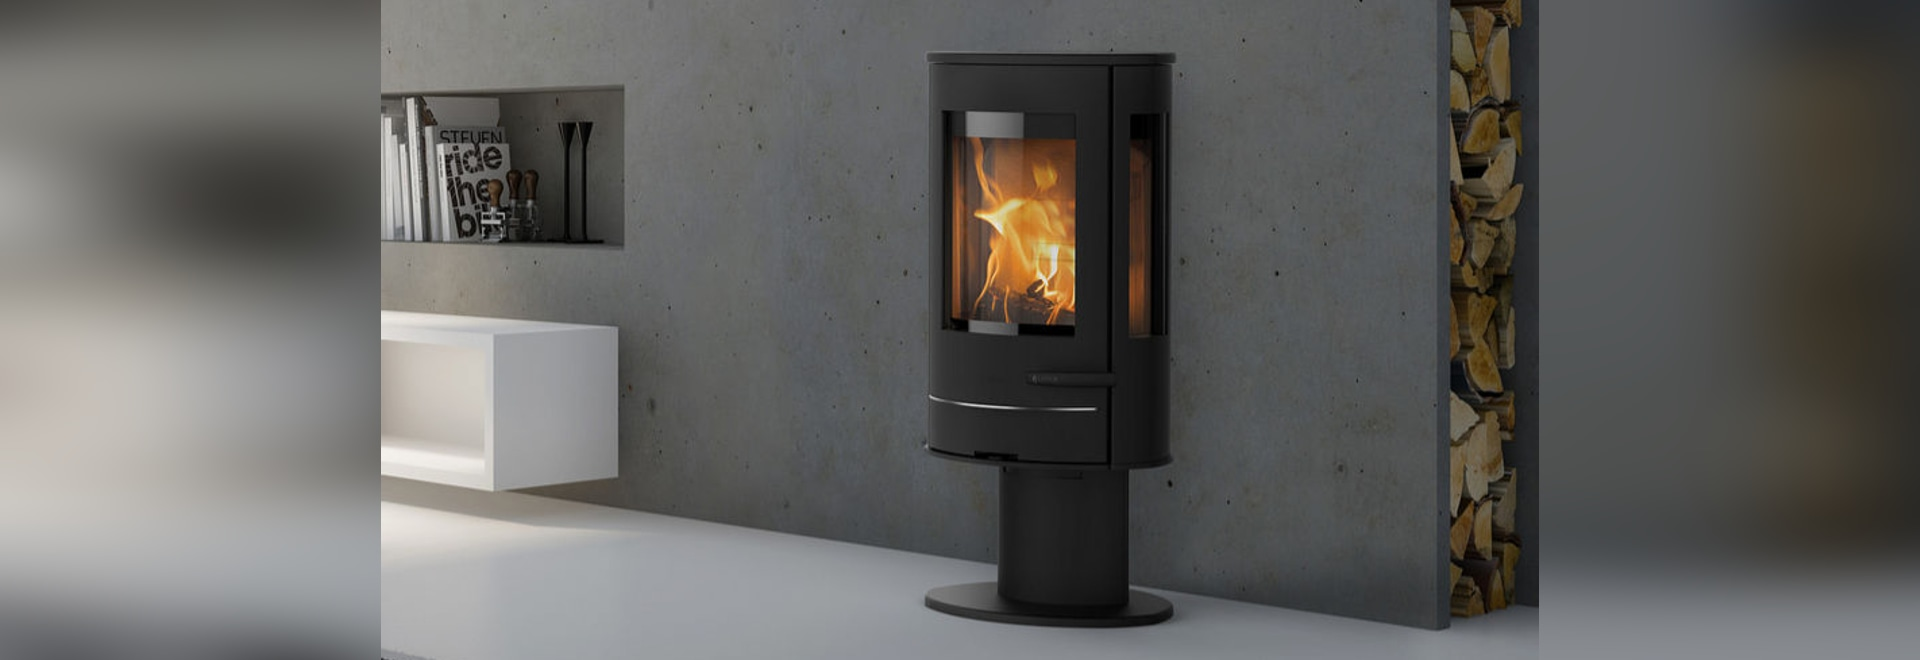 Kaminofen Lotus Test Lotus Kamin Finest Fireplace Lotus Ii Creaion With Lotus Kamin